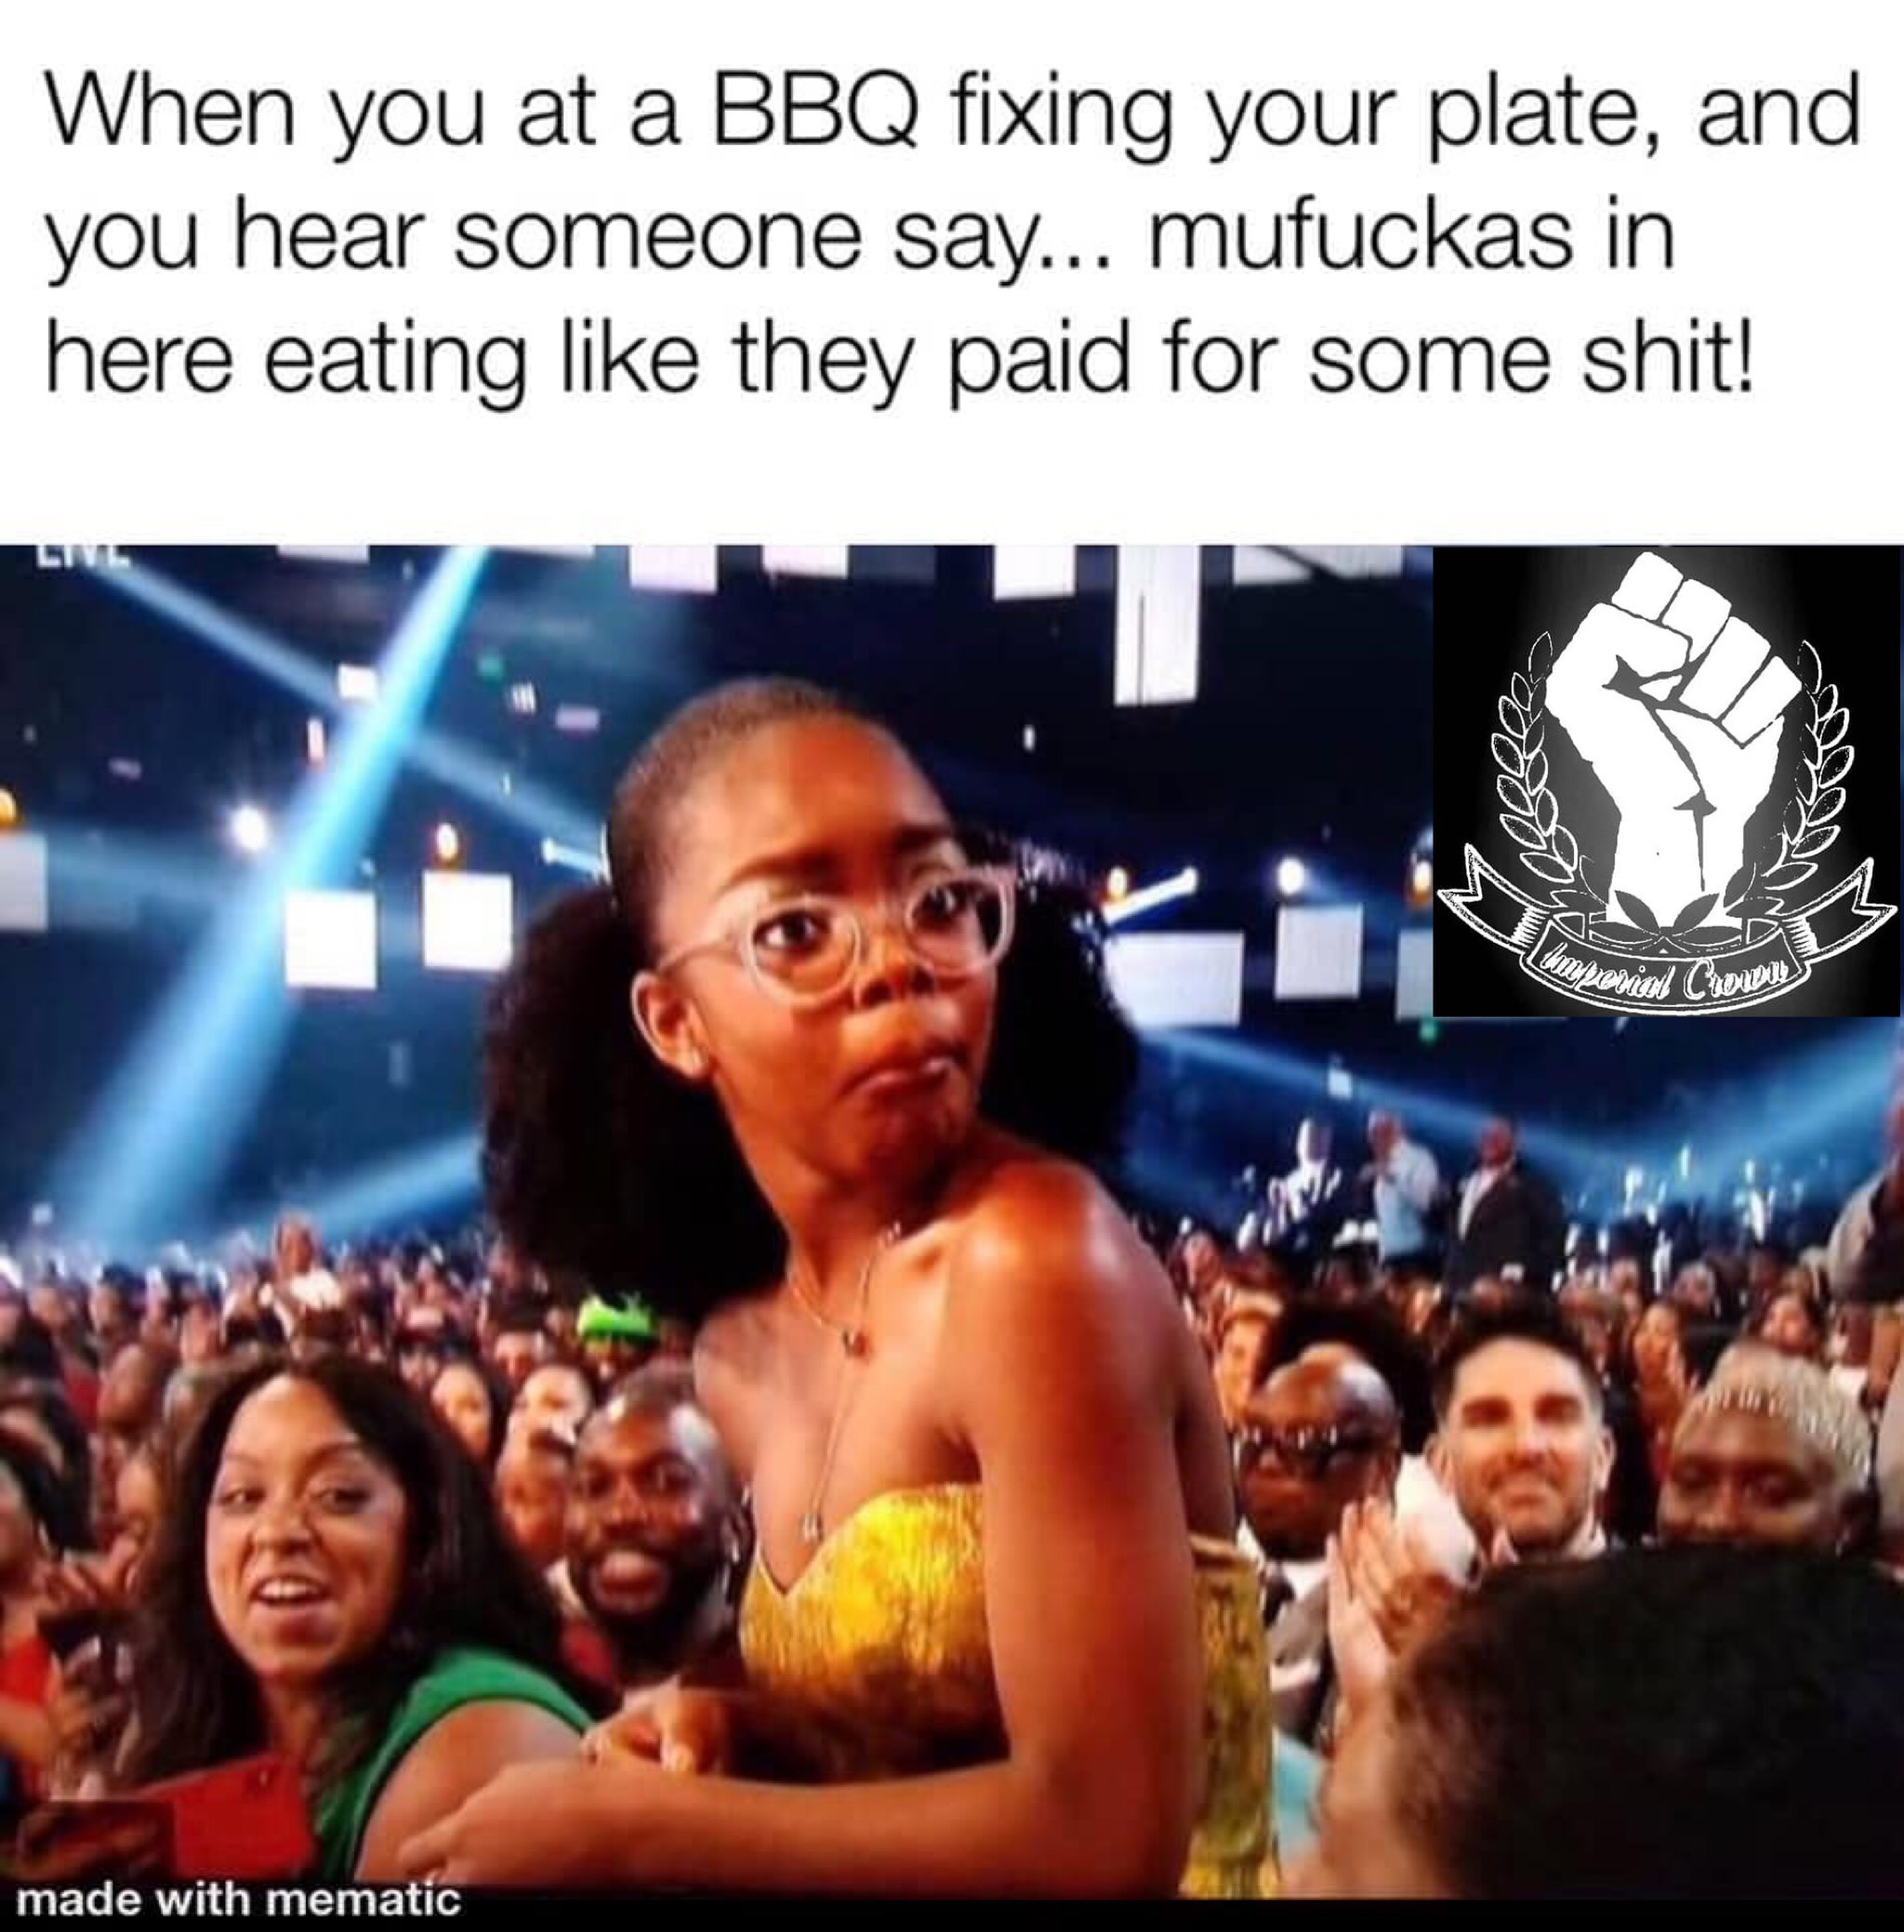 When you at a BBQ …